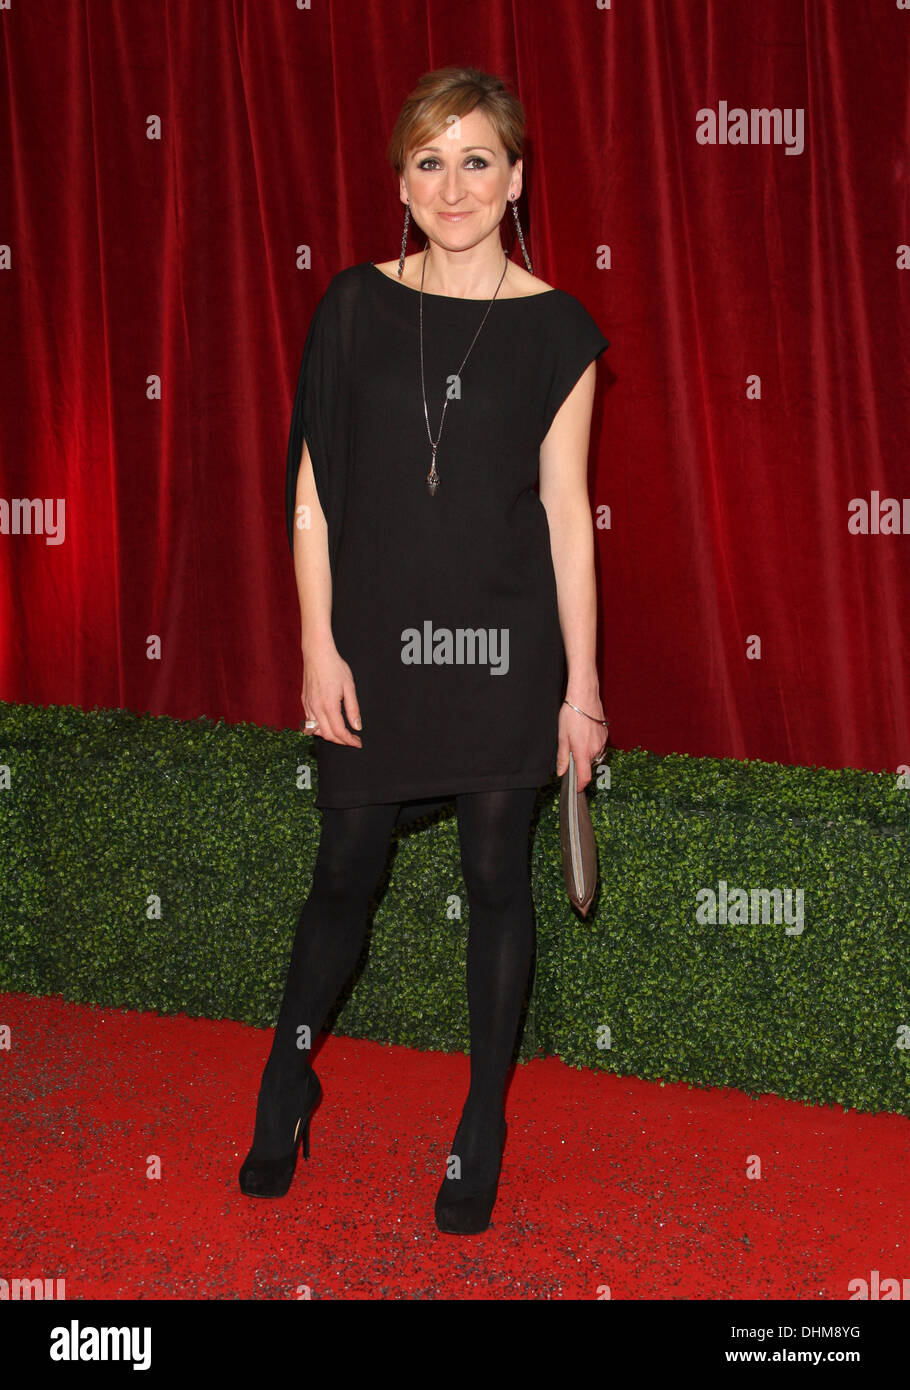 Charlotte bellamy british soap awards in manchester uk nude (61 photos)